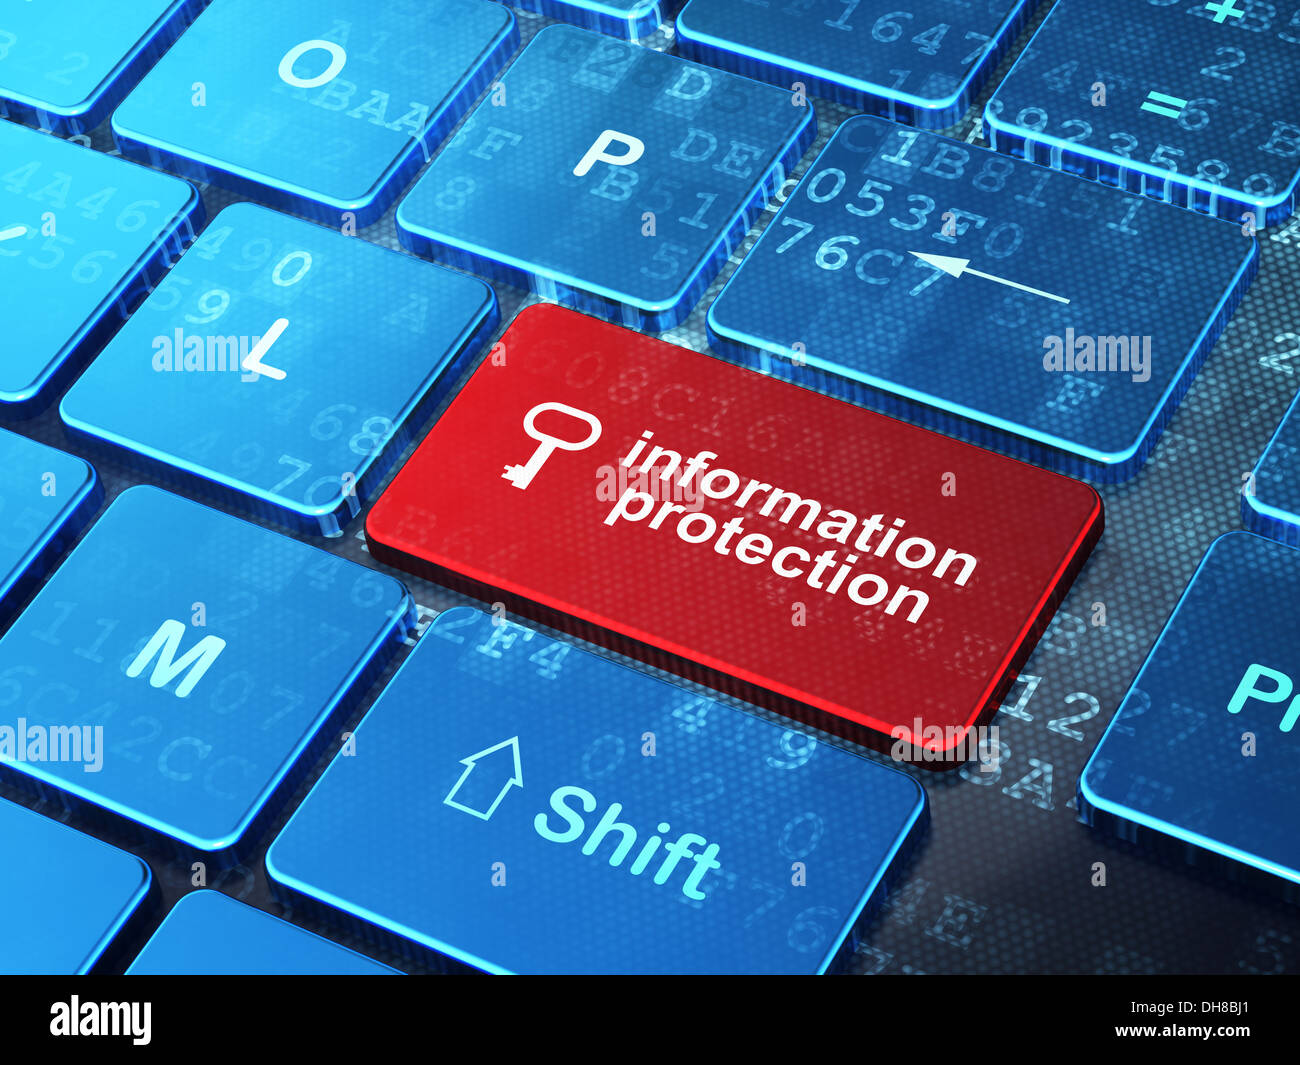 information security wallpaper - photo #41